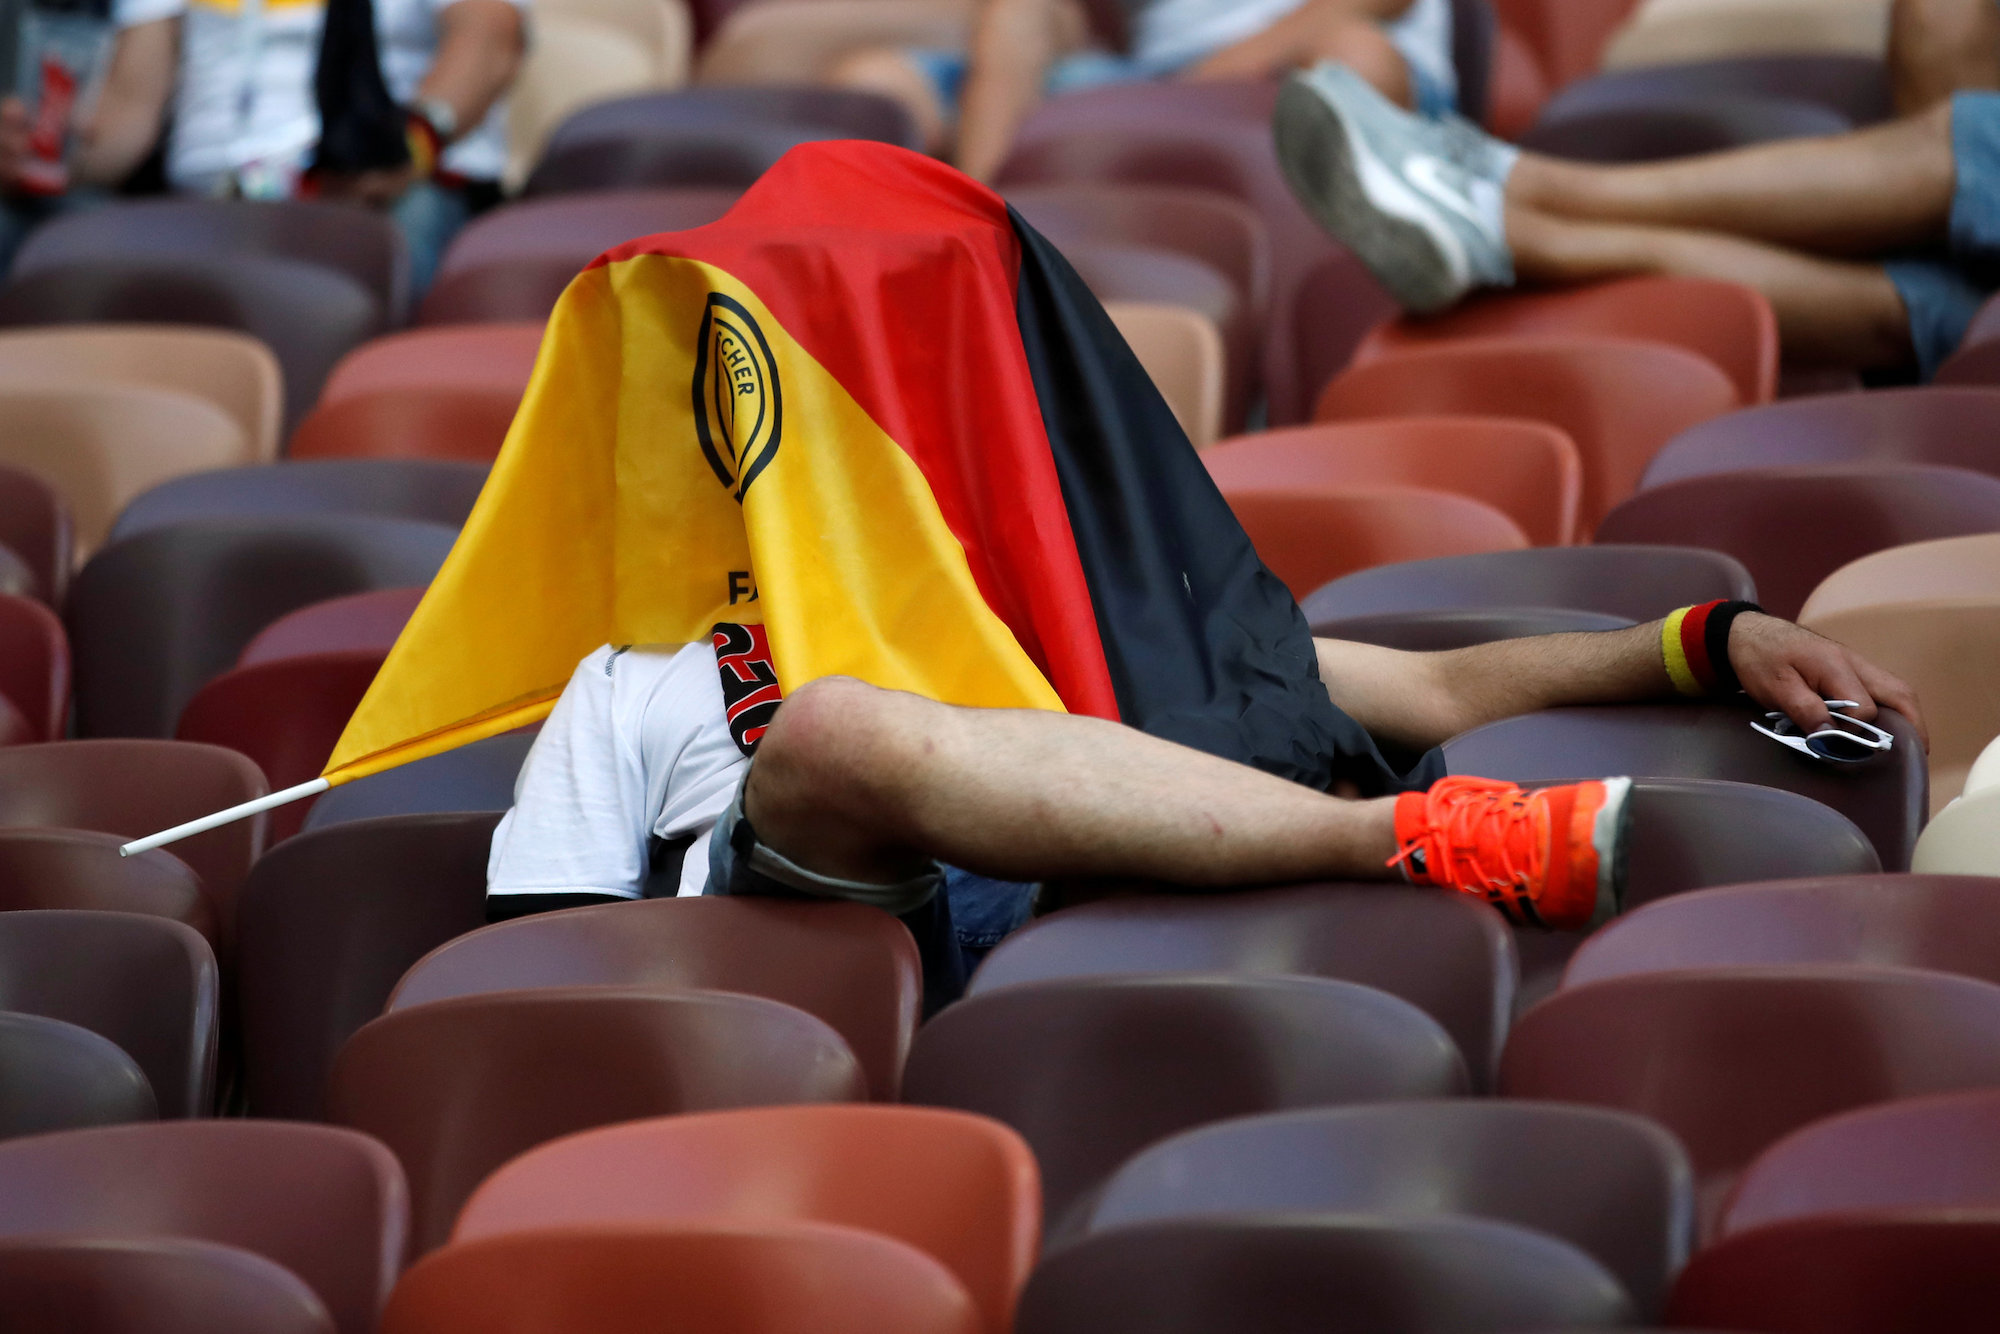 Soccer Football - World Cup - Group F - Germany vs Mexico - Luzhniki Stadium, Moscow, Russia - June 17, 2018   Germany fan co